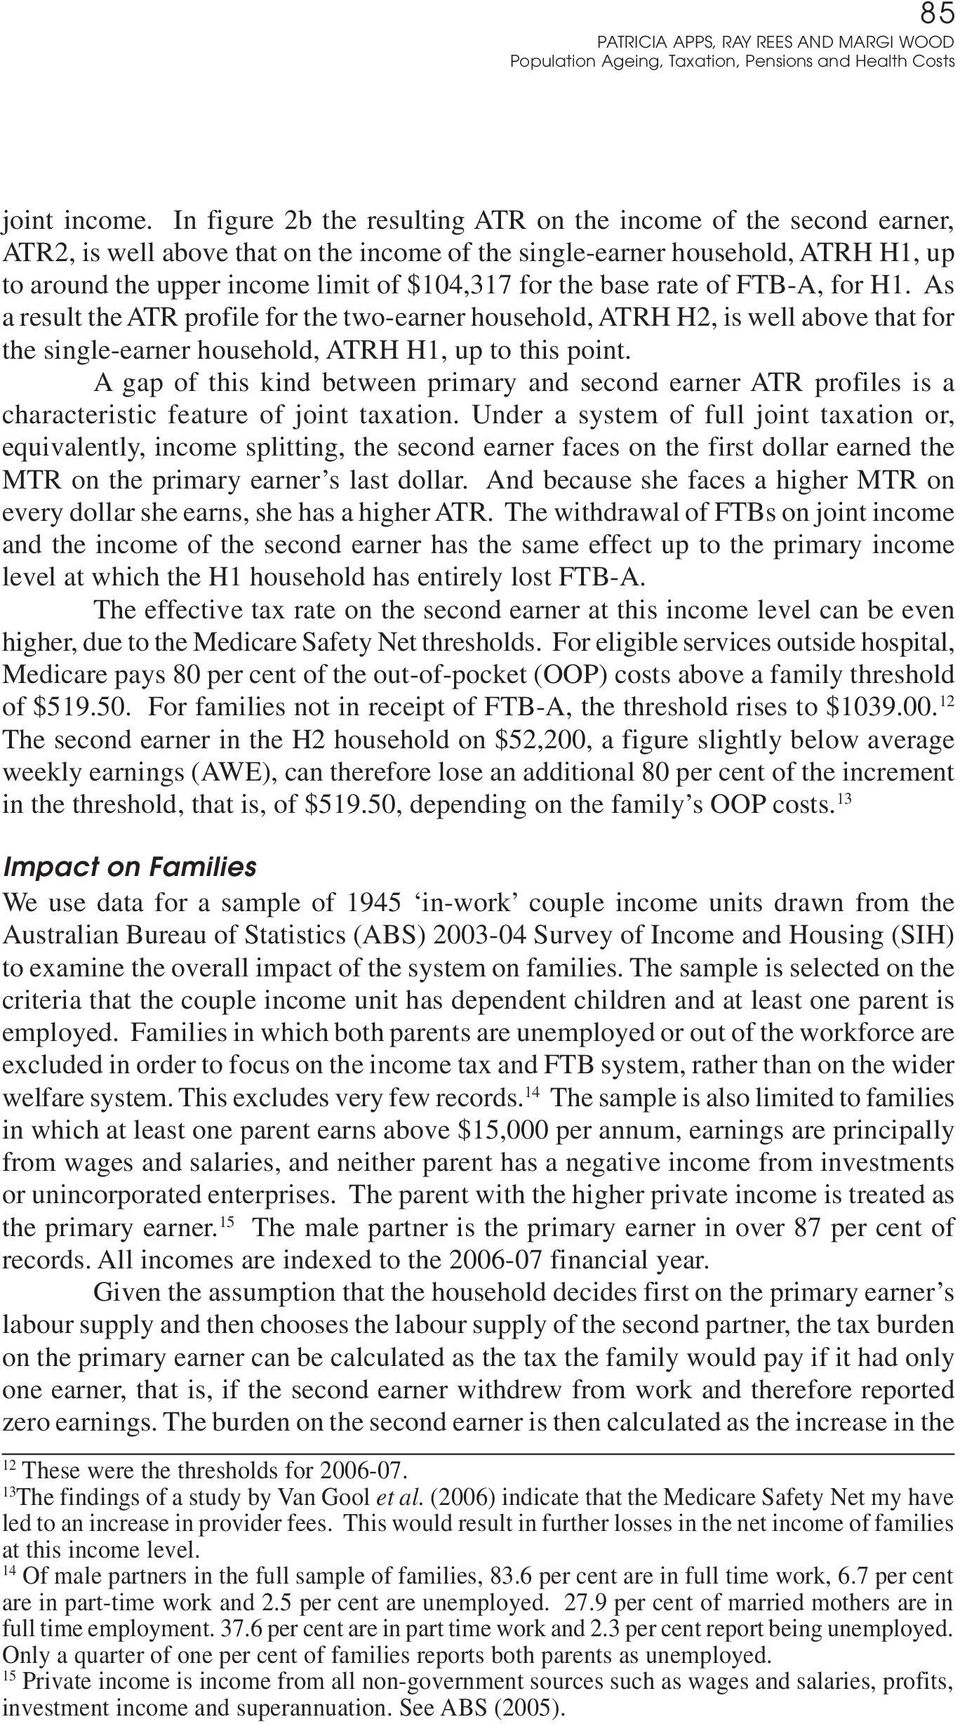 the base rate of FTB-A, for H1. As a result the ATR profile for the two-earner household, ATRH H2, is well above that for the single-earner household, ATRH H1, up to this point.